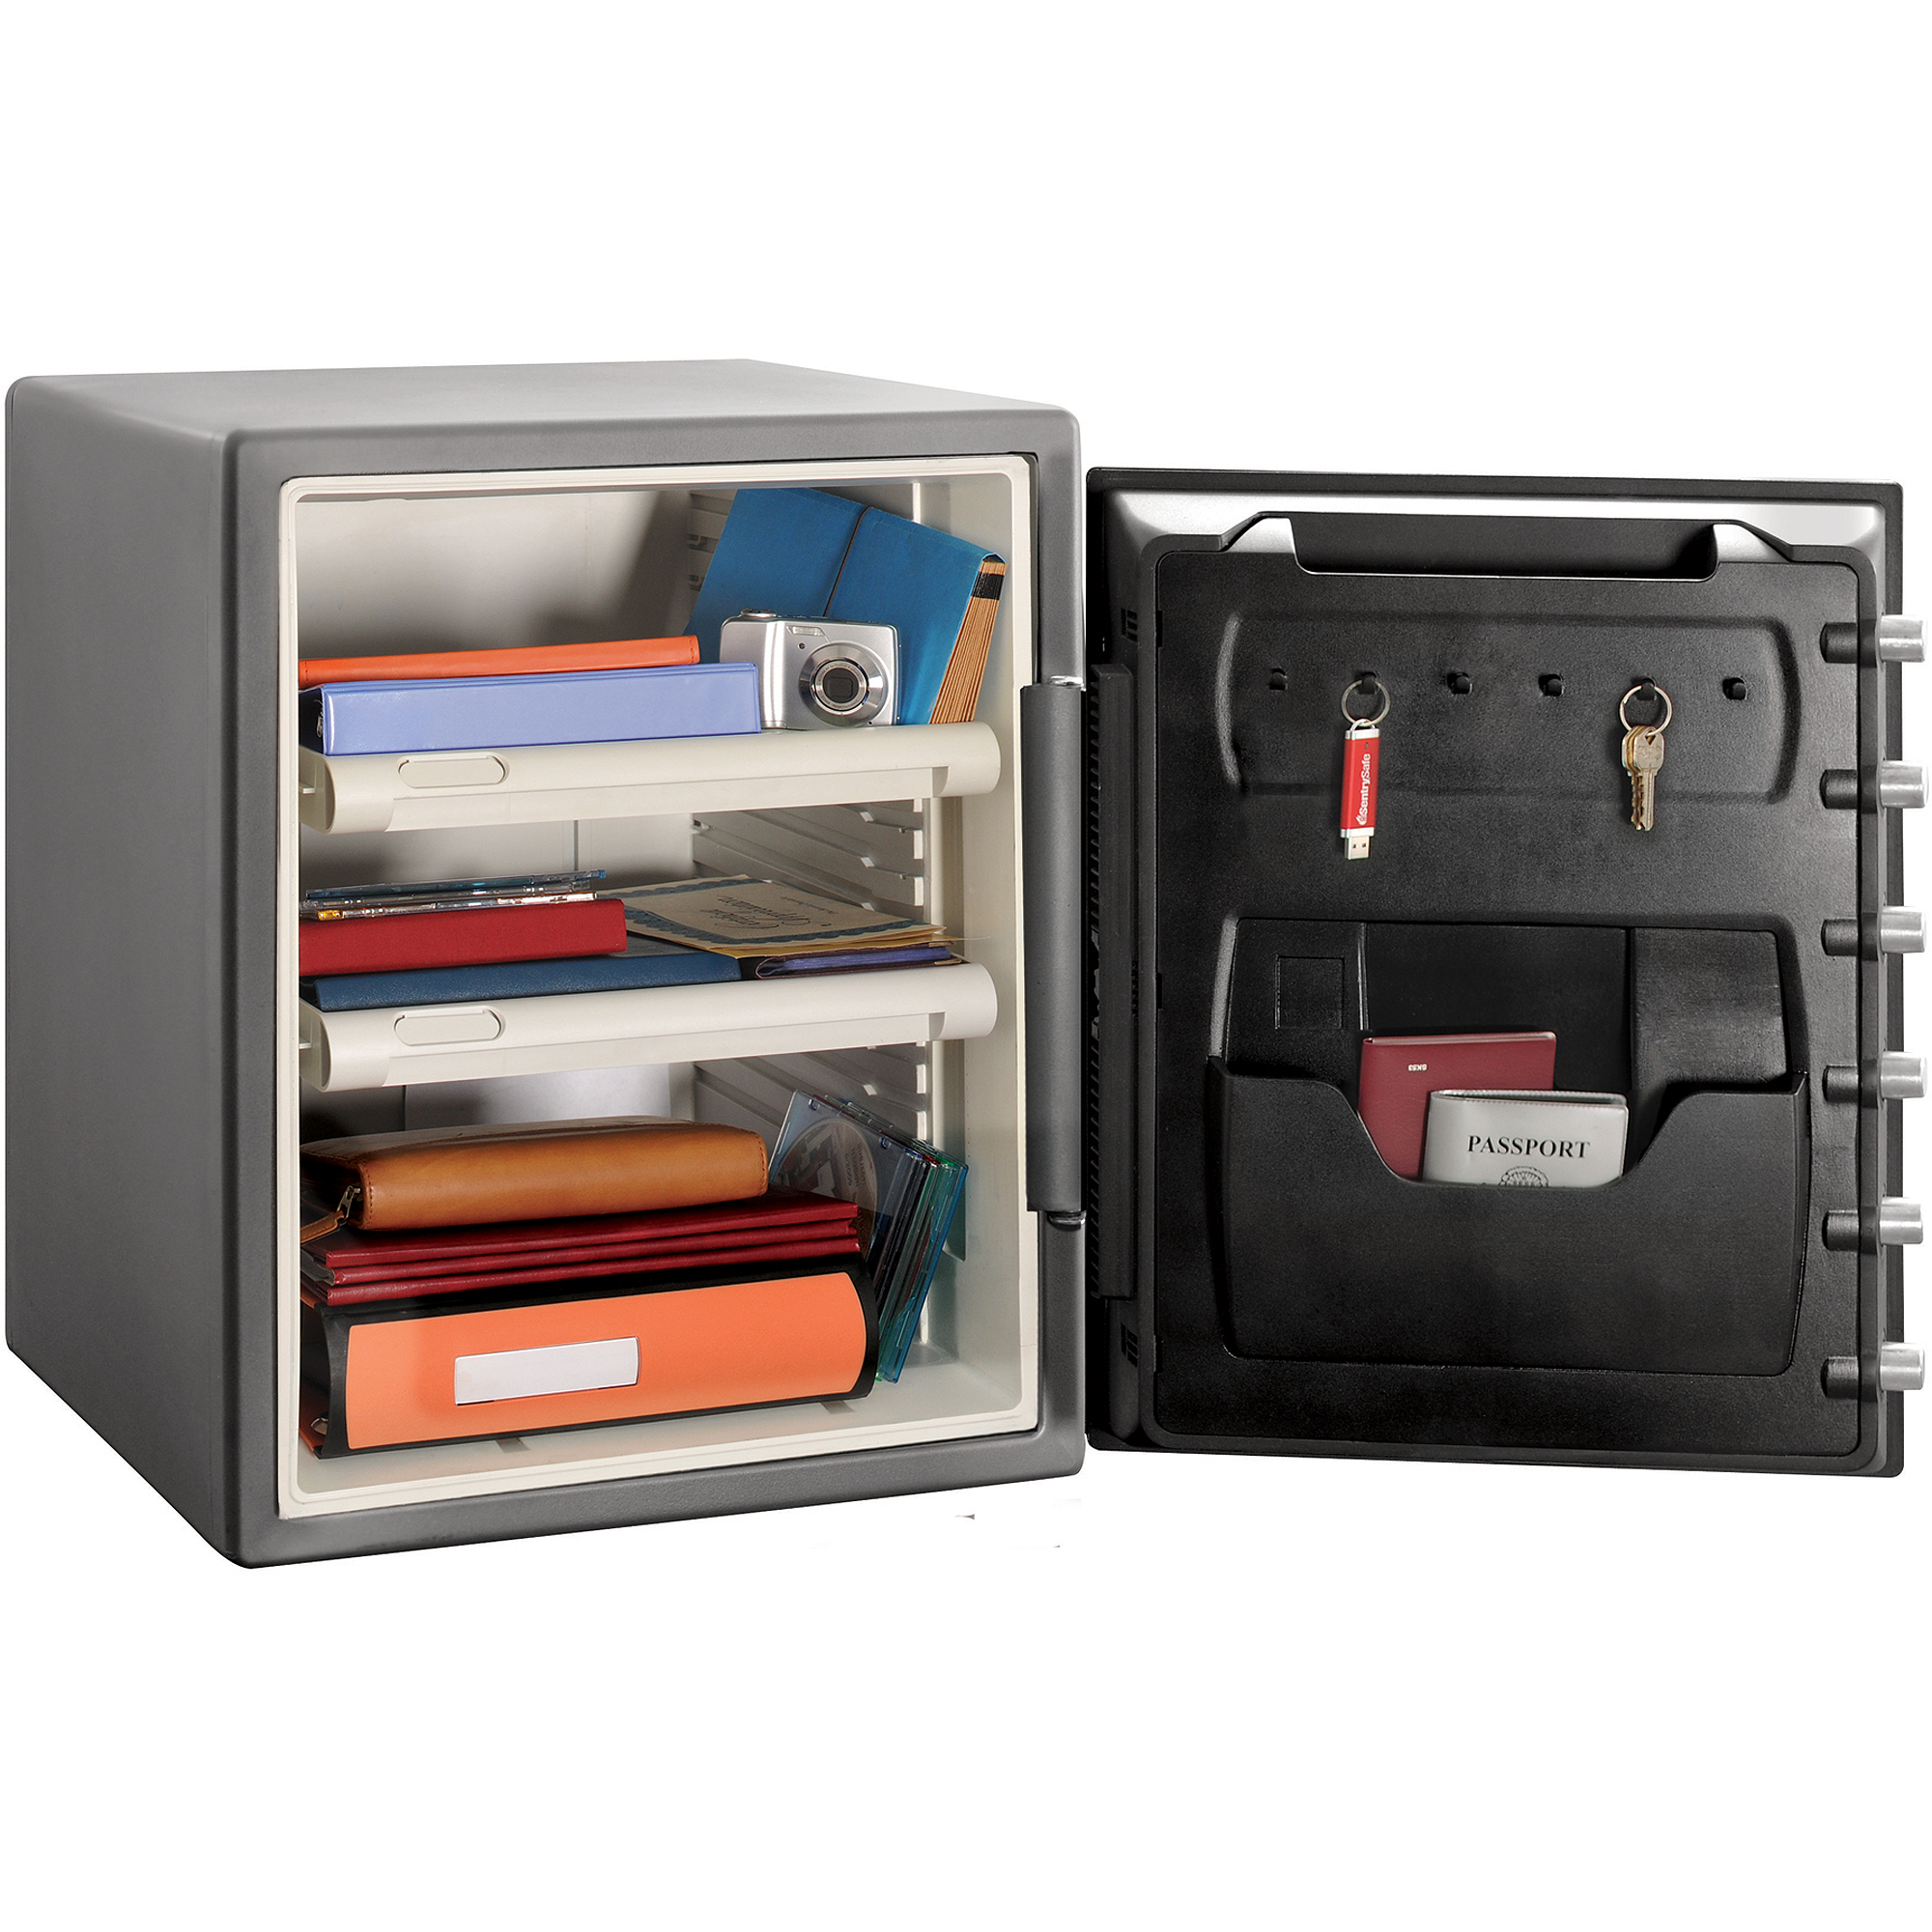 SentrySafe SF205CV Fire-Resistant Safe with Combination Lock 2 0 cu ft